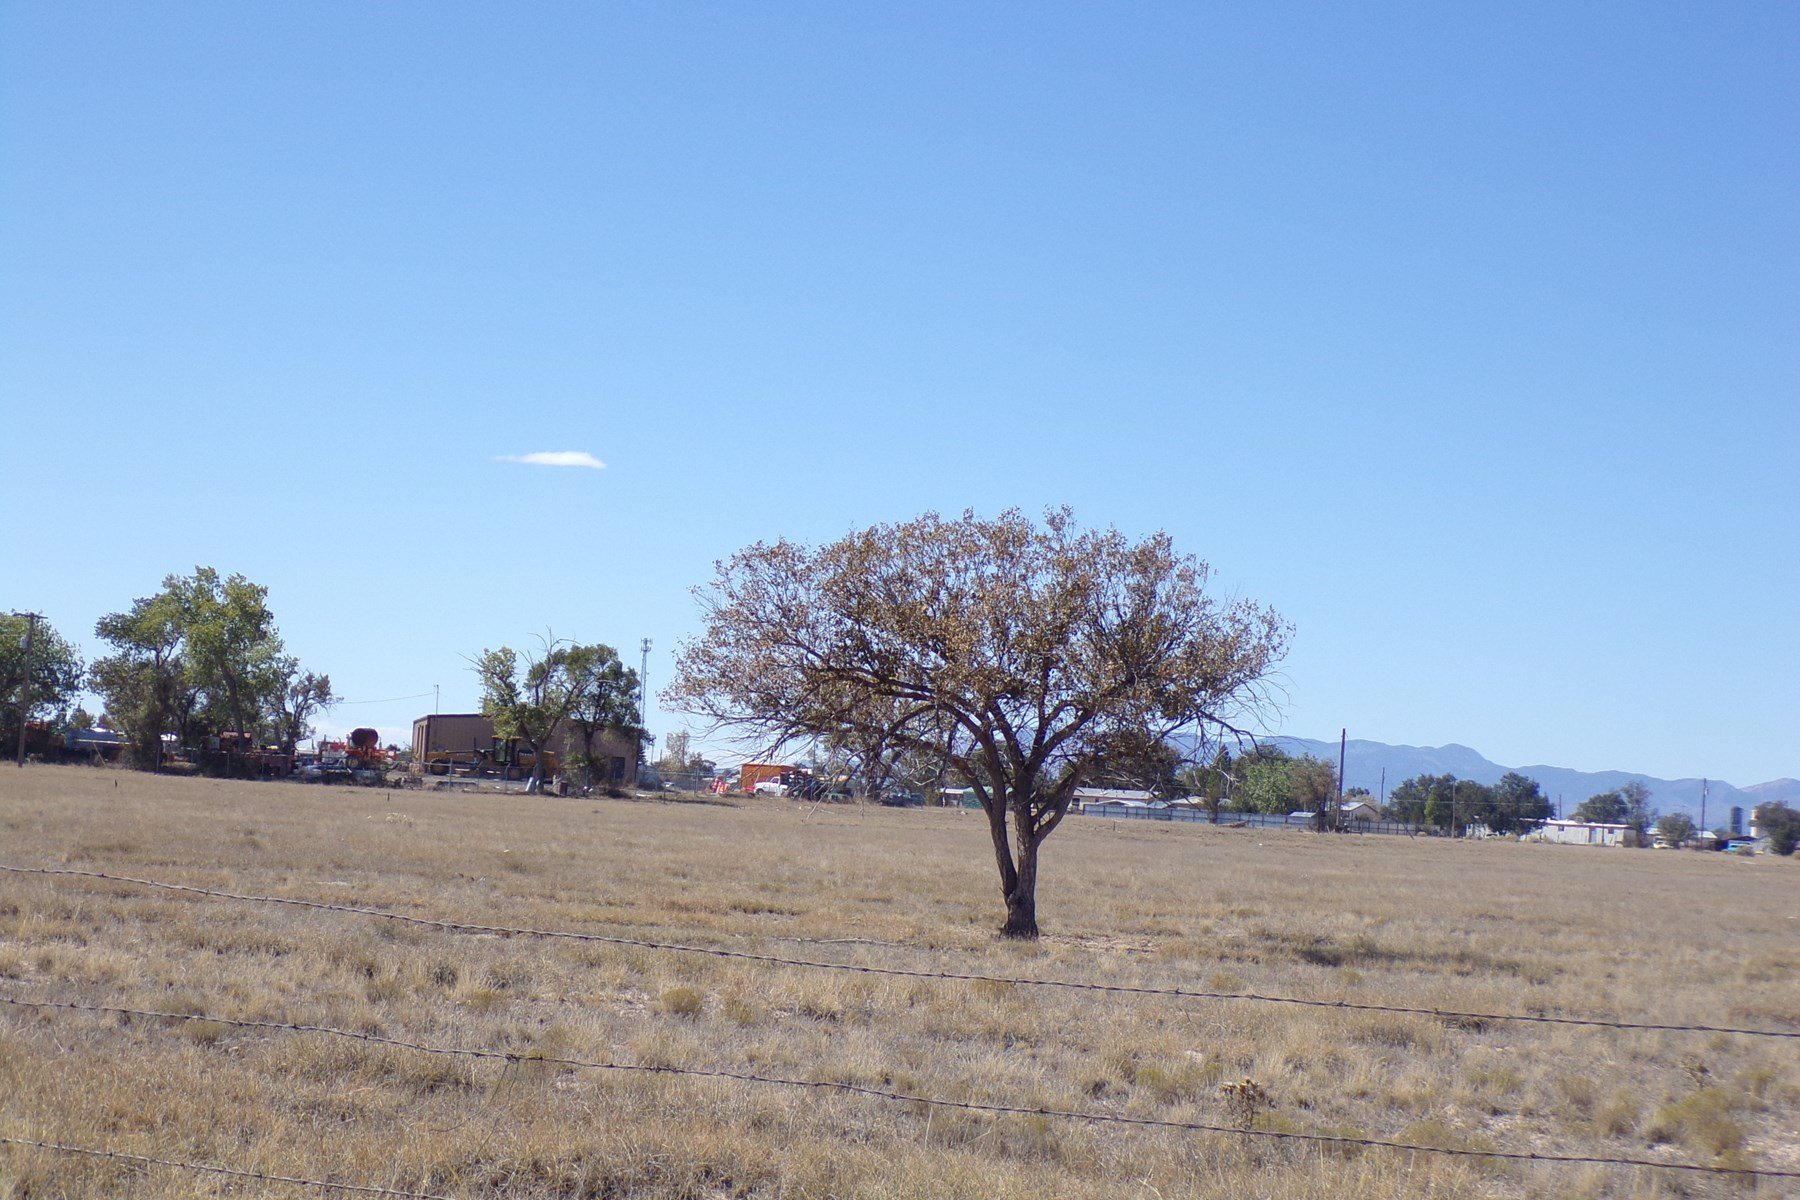 Estancia NM Prime Location 75 Acres For Sale On Paved Street